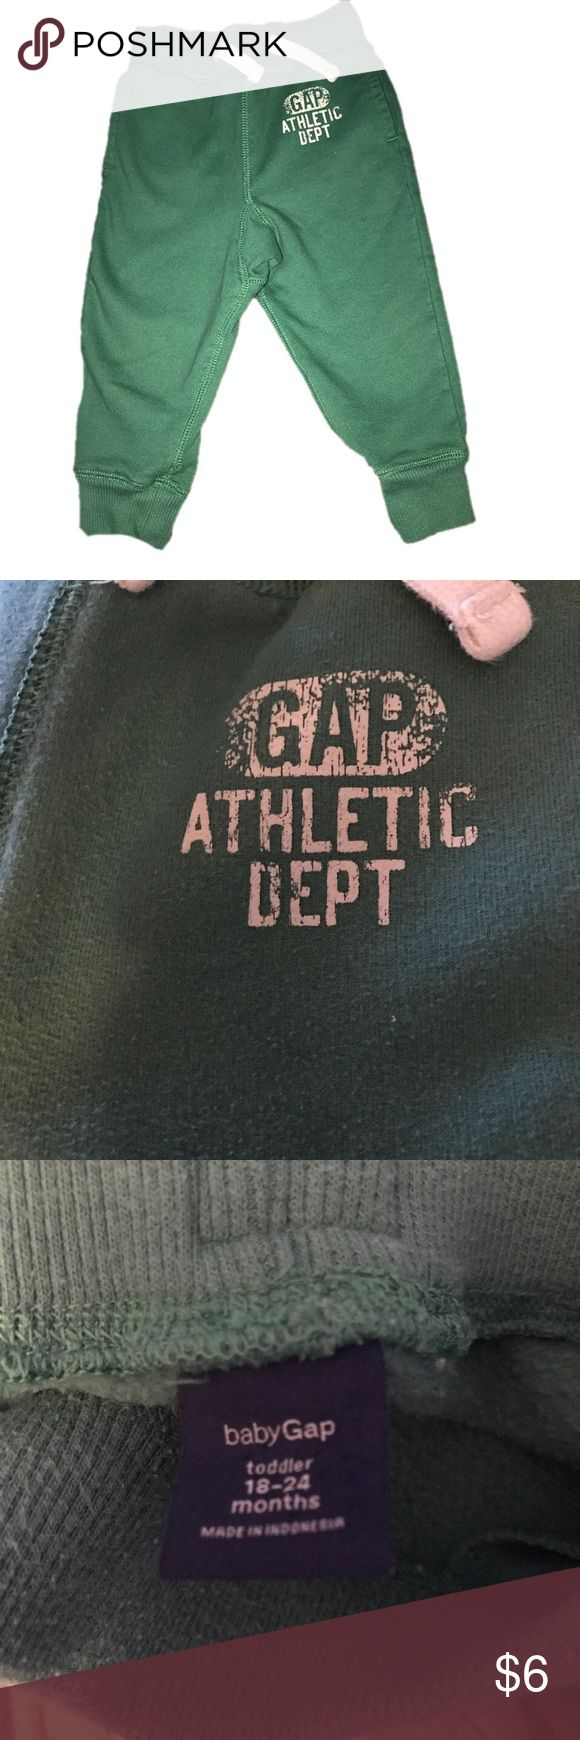 ⭐️Baby Gap 18-24 Mo Pale Green Sweat Pants Baby Gap 18-24 Mo Pale Green Sweat Pants . In good condition. Has fade and pills. Soft on the inside. Purchased with more of a rustic green look originally. (Bag 199) GAP Bottoms Sweatpants & Joggers